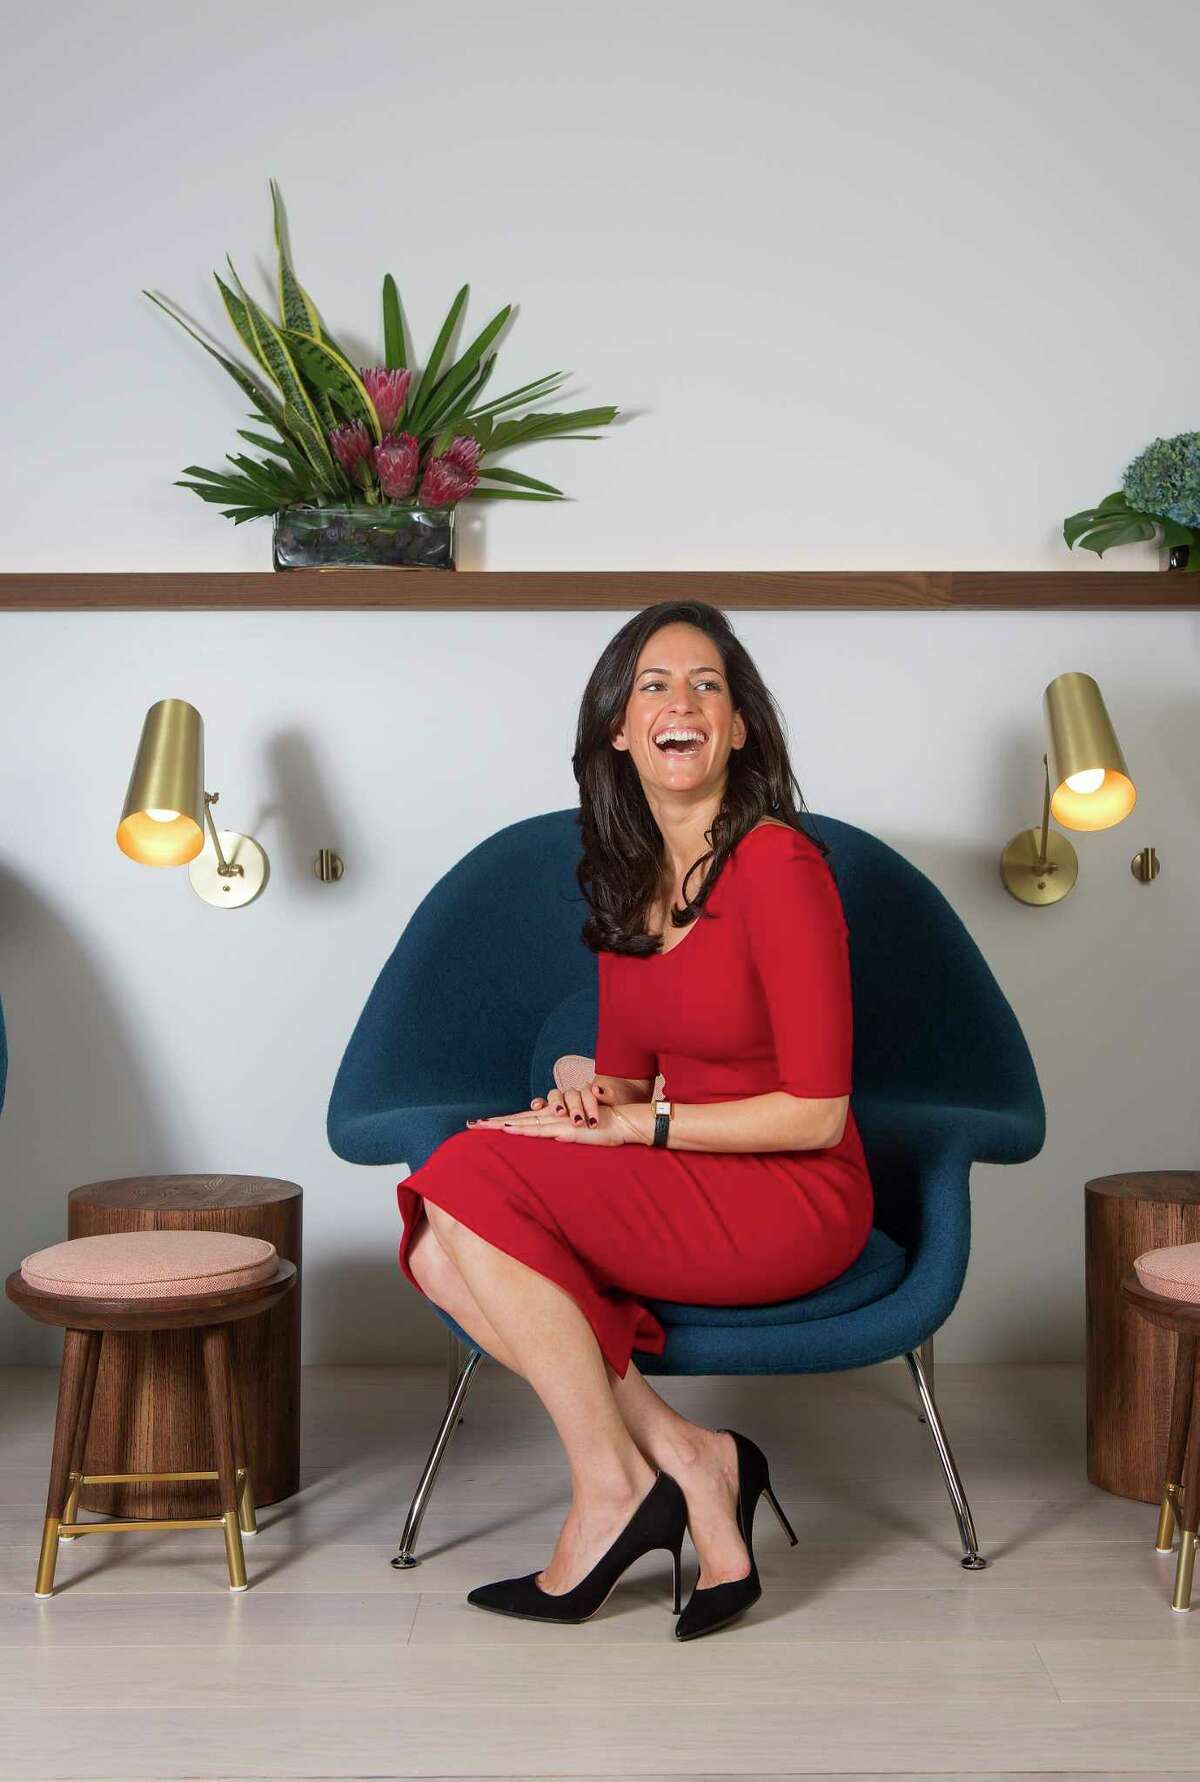 Two years ago, Maryam Naderi noticed a gap in the local nail-salon market, so she opened Paloma, a nontoxic nail salon in BLVD Place. Last year, the Dallas-native expanded to the Heights. Paloma's second location, located in the bustling Heights Mercantile shopping center, opened earlier this year.